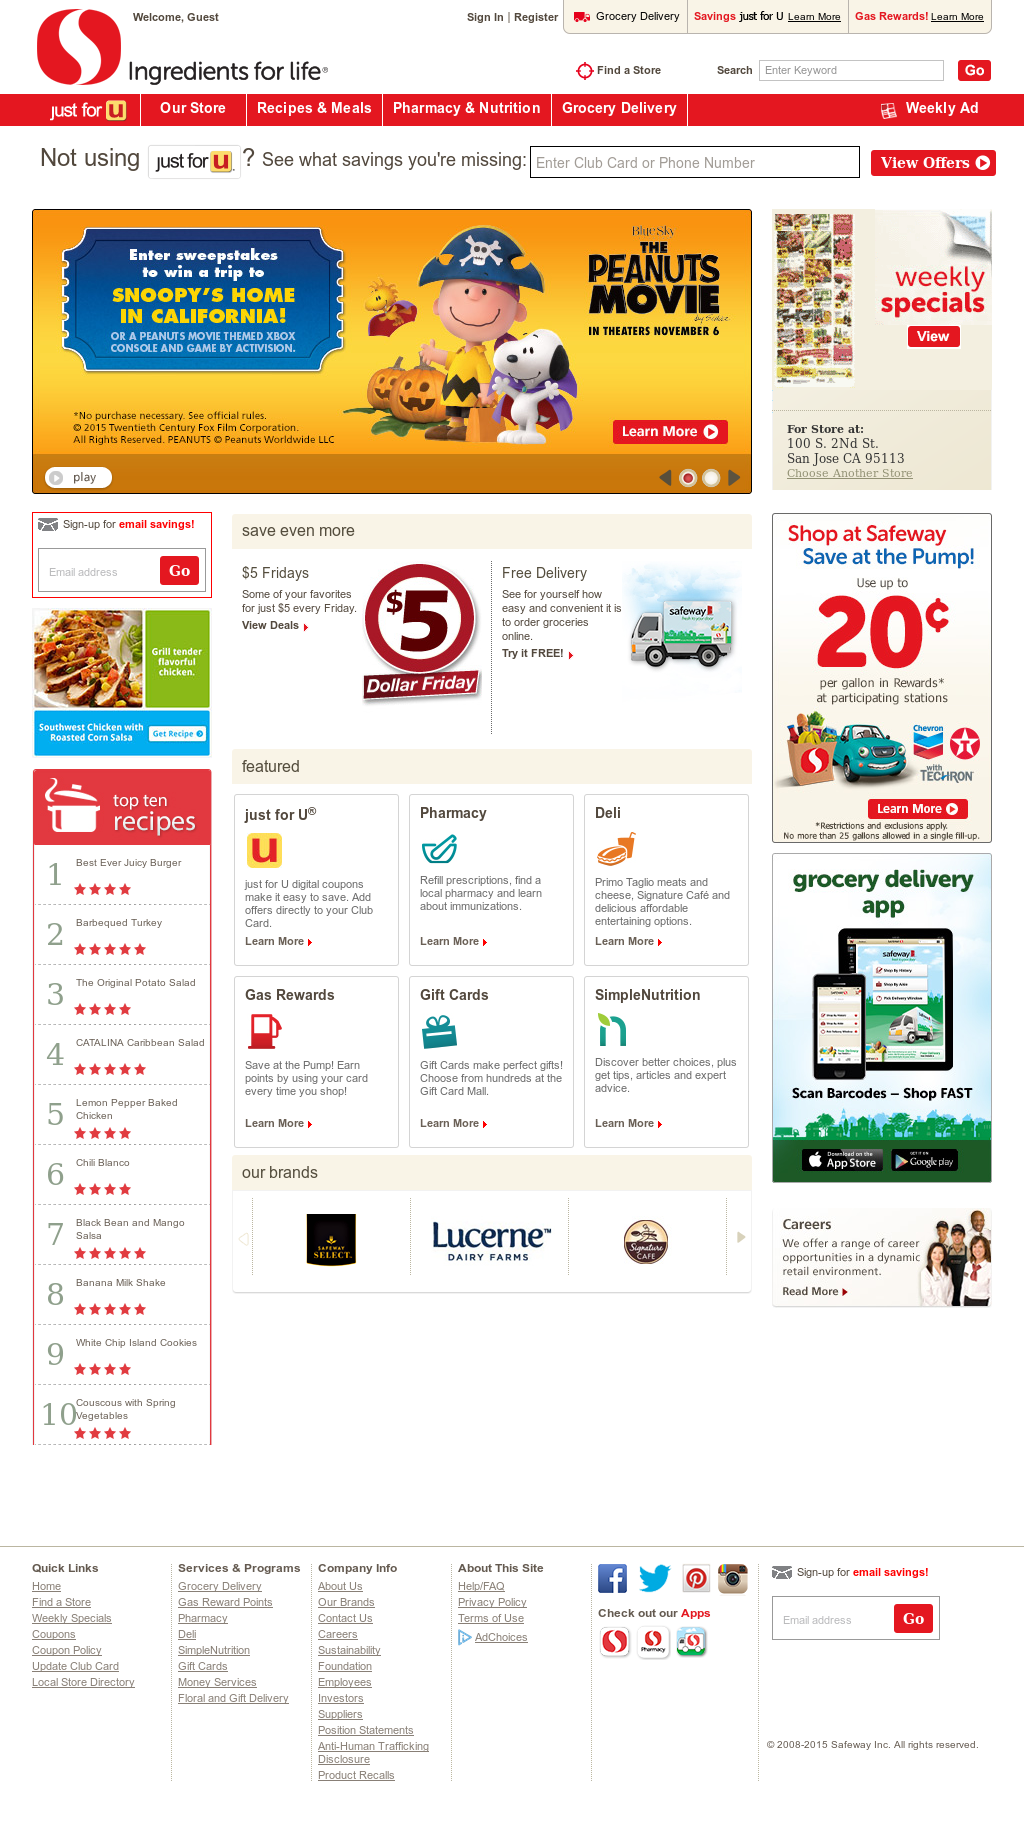 Safeway Competitors, Revenue and Employees - Owler Company Profile